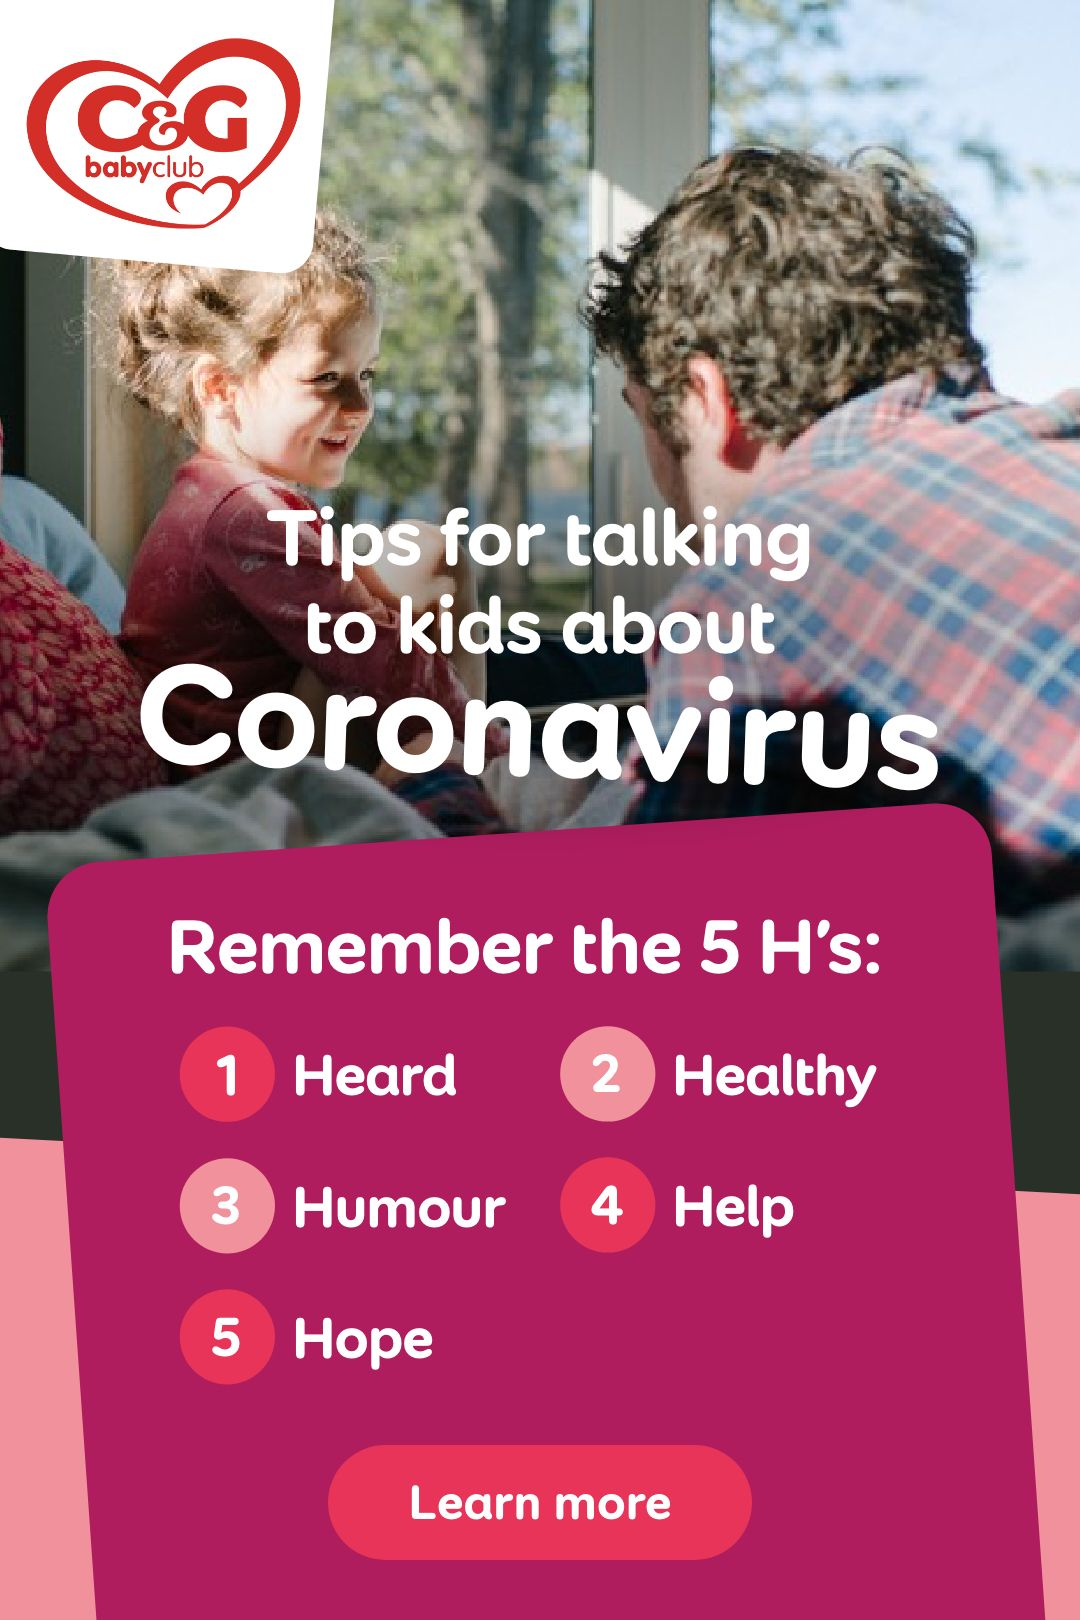 Little one still full of questions? Read Dr Coulson's 5 tips for talking to kids about Coronavirus.